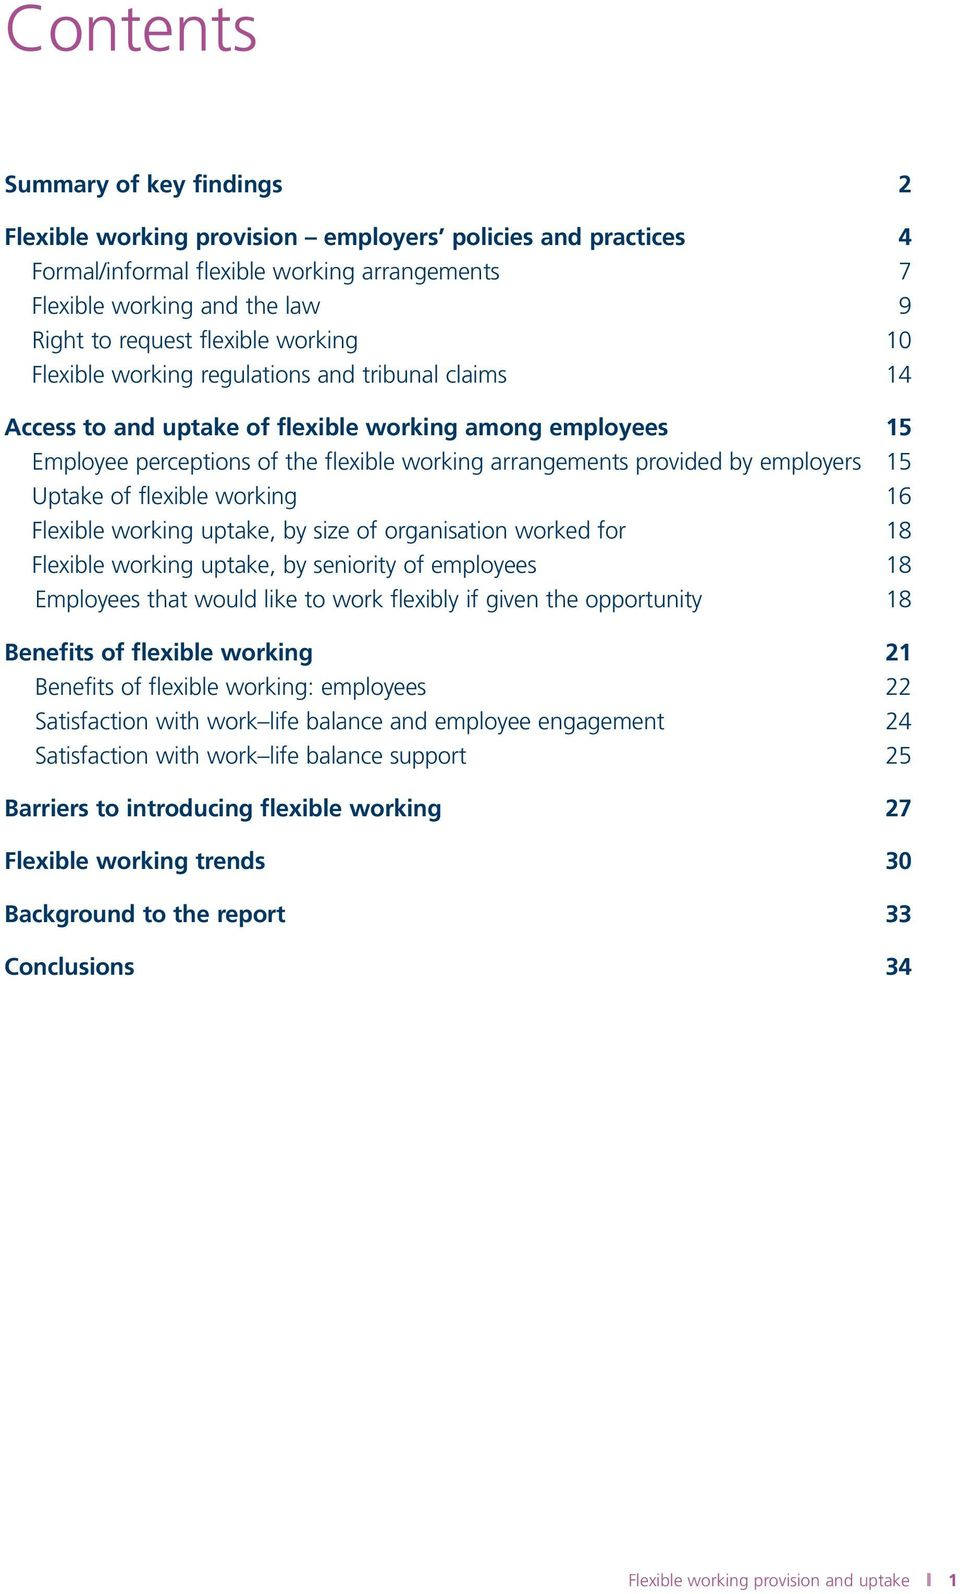 by employers 15 Uptake of flexible working 16 Flexible working uptake, by size of organisation worked for 18 Flexible working uptake, by seniority of employees 18 Employees that would like to work